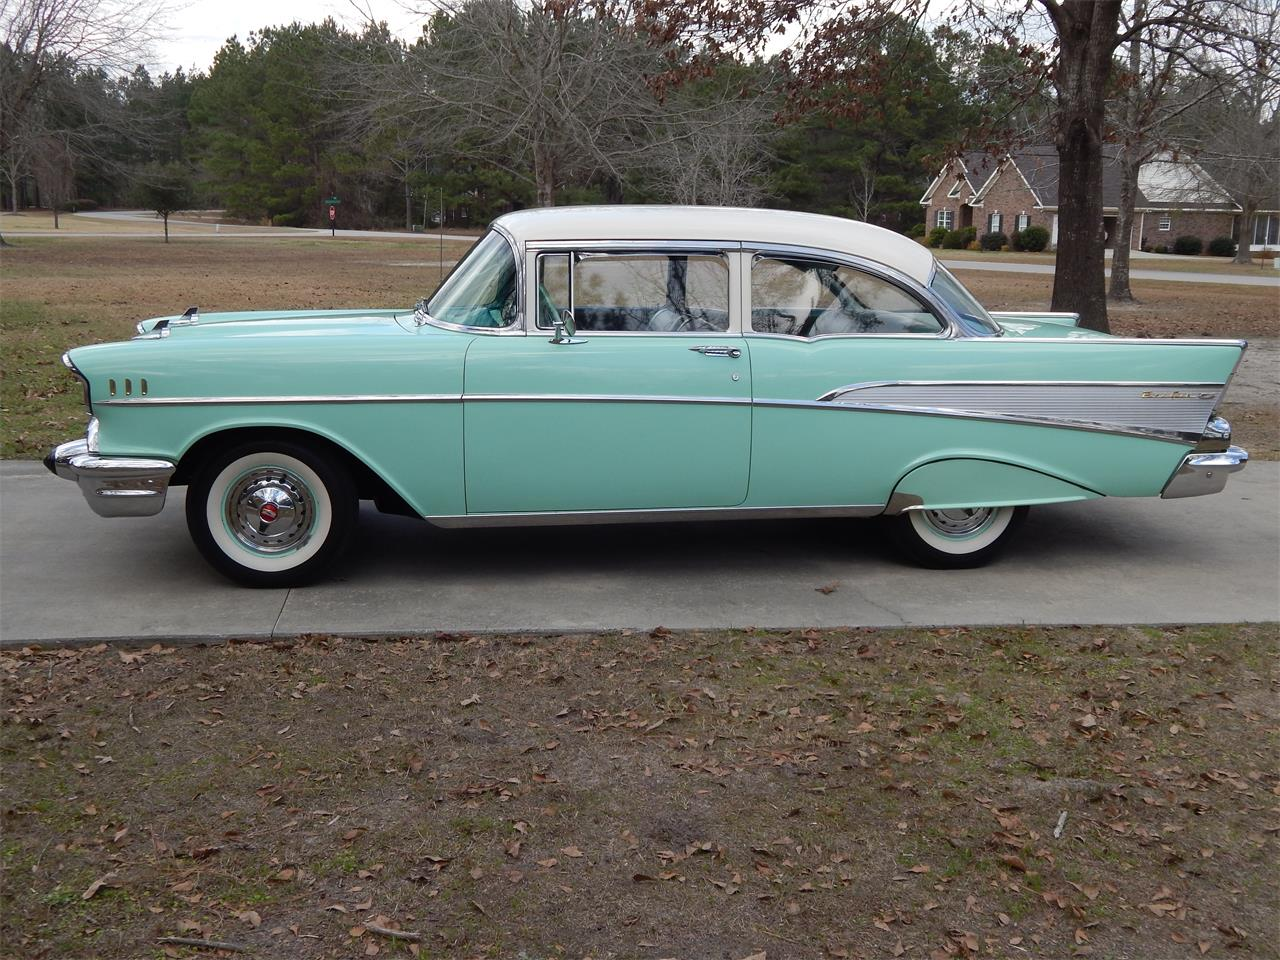 1957 Chevrolet Bel Air for sale in Online, Online Auction – photo 2